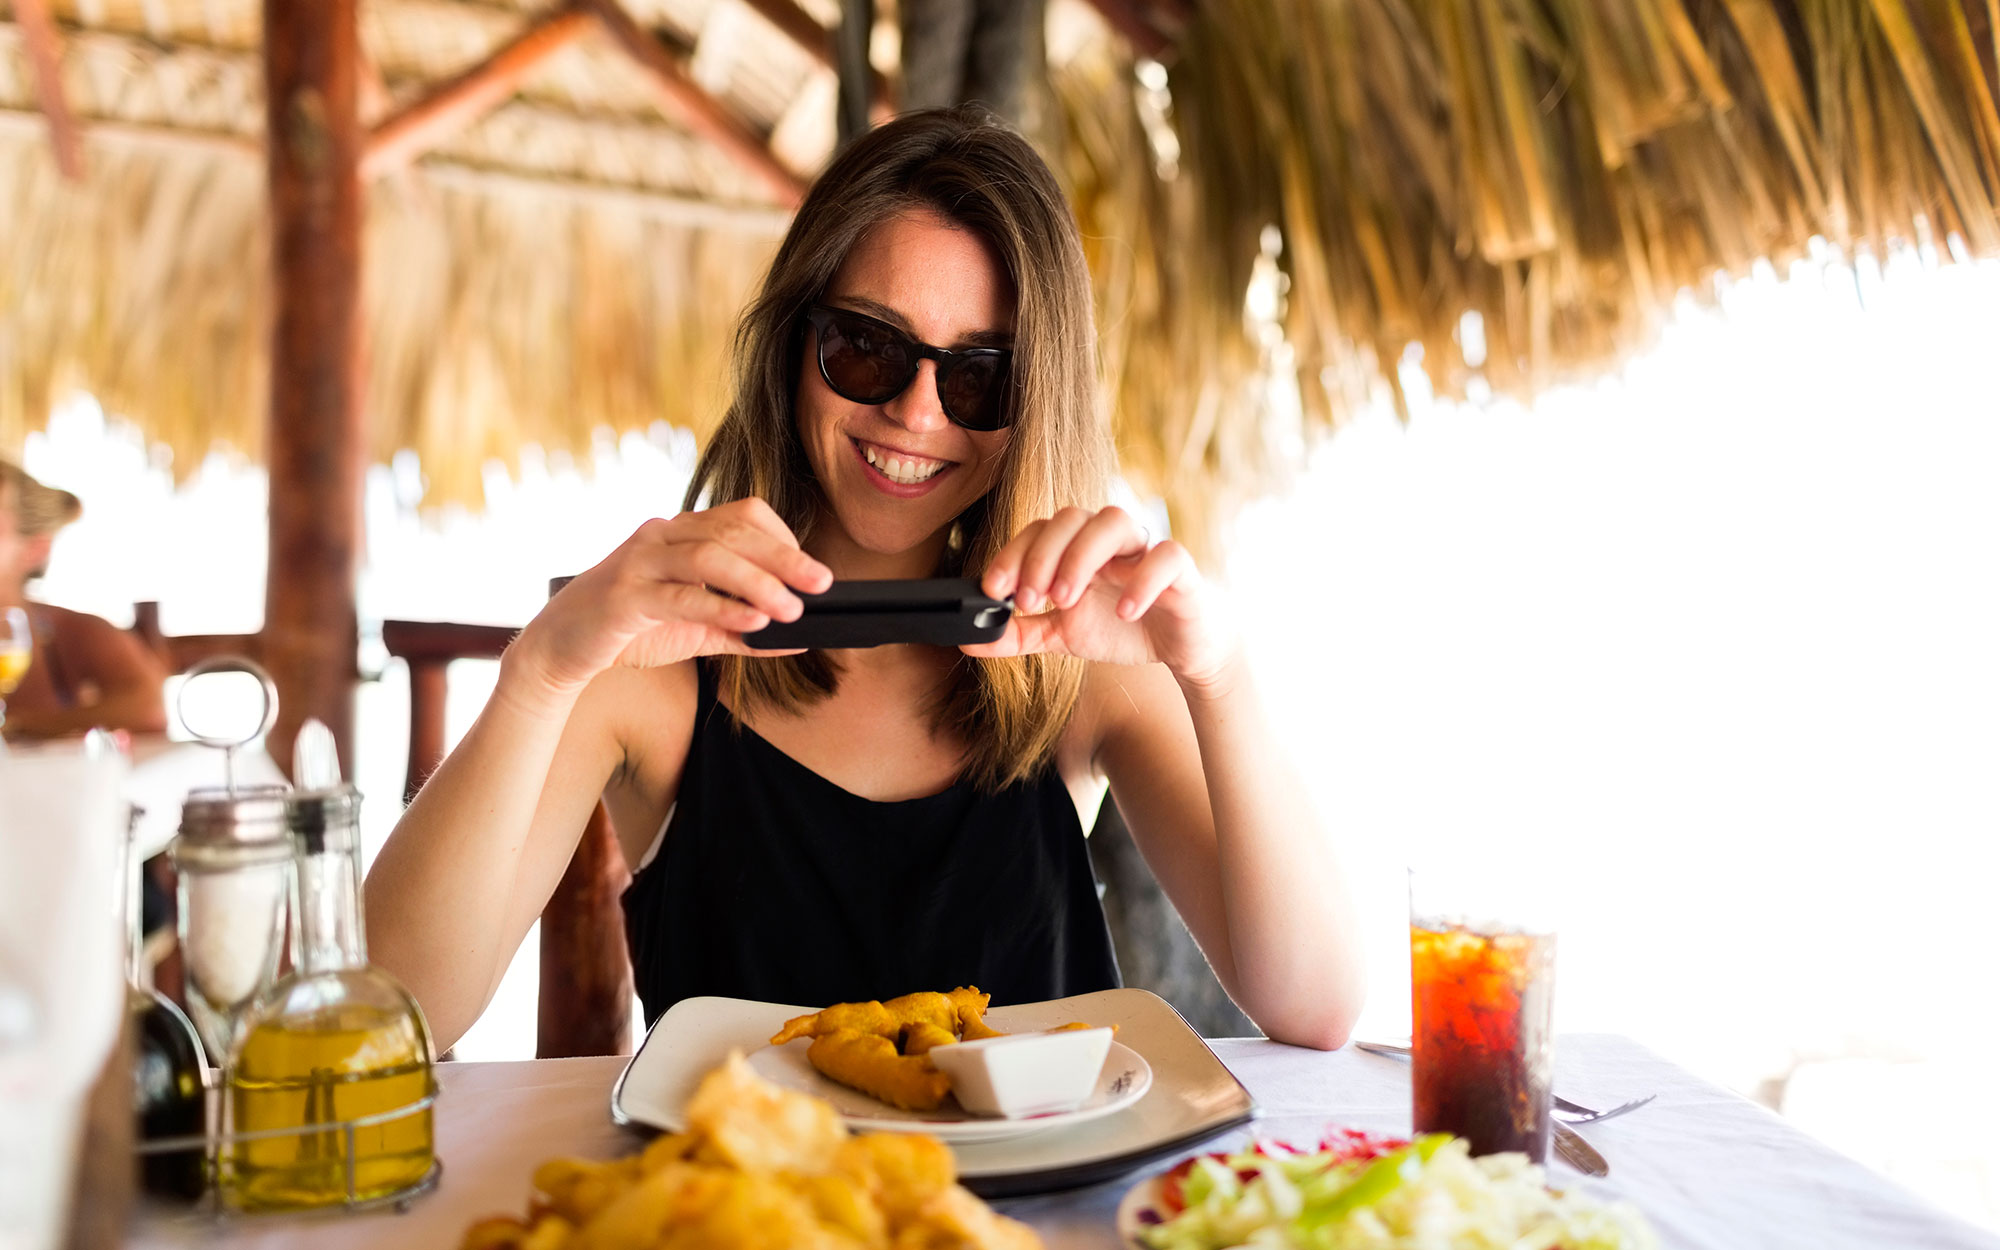 Hacks for Mastering Solo Travel: Find mealtime entertainment